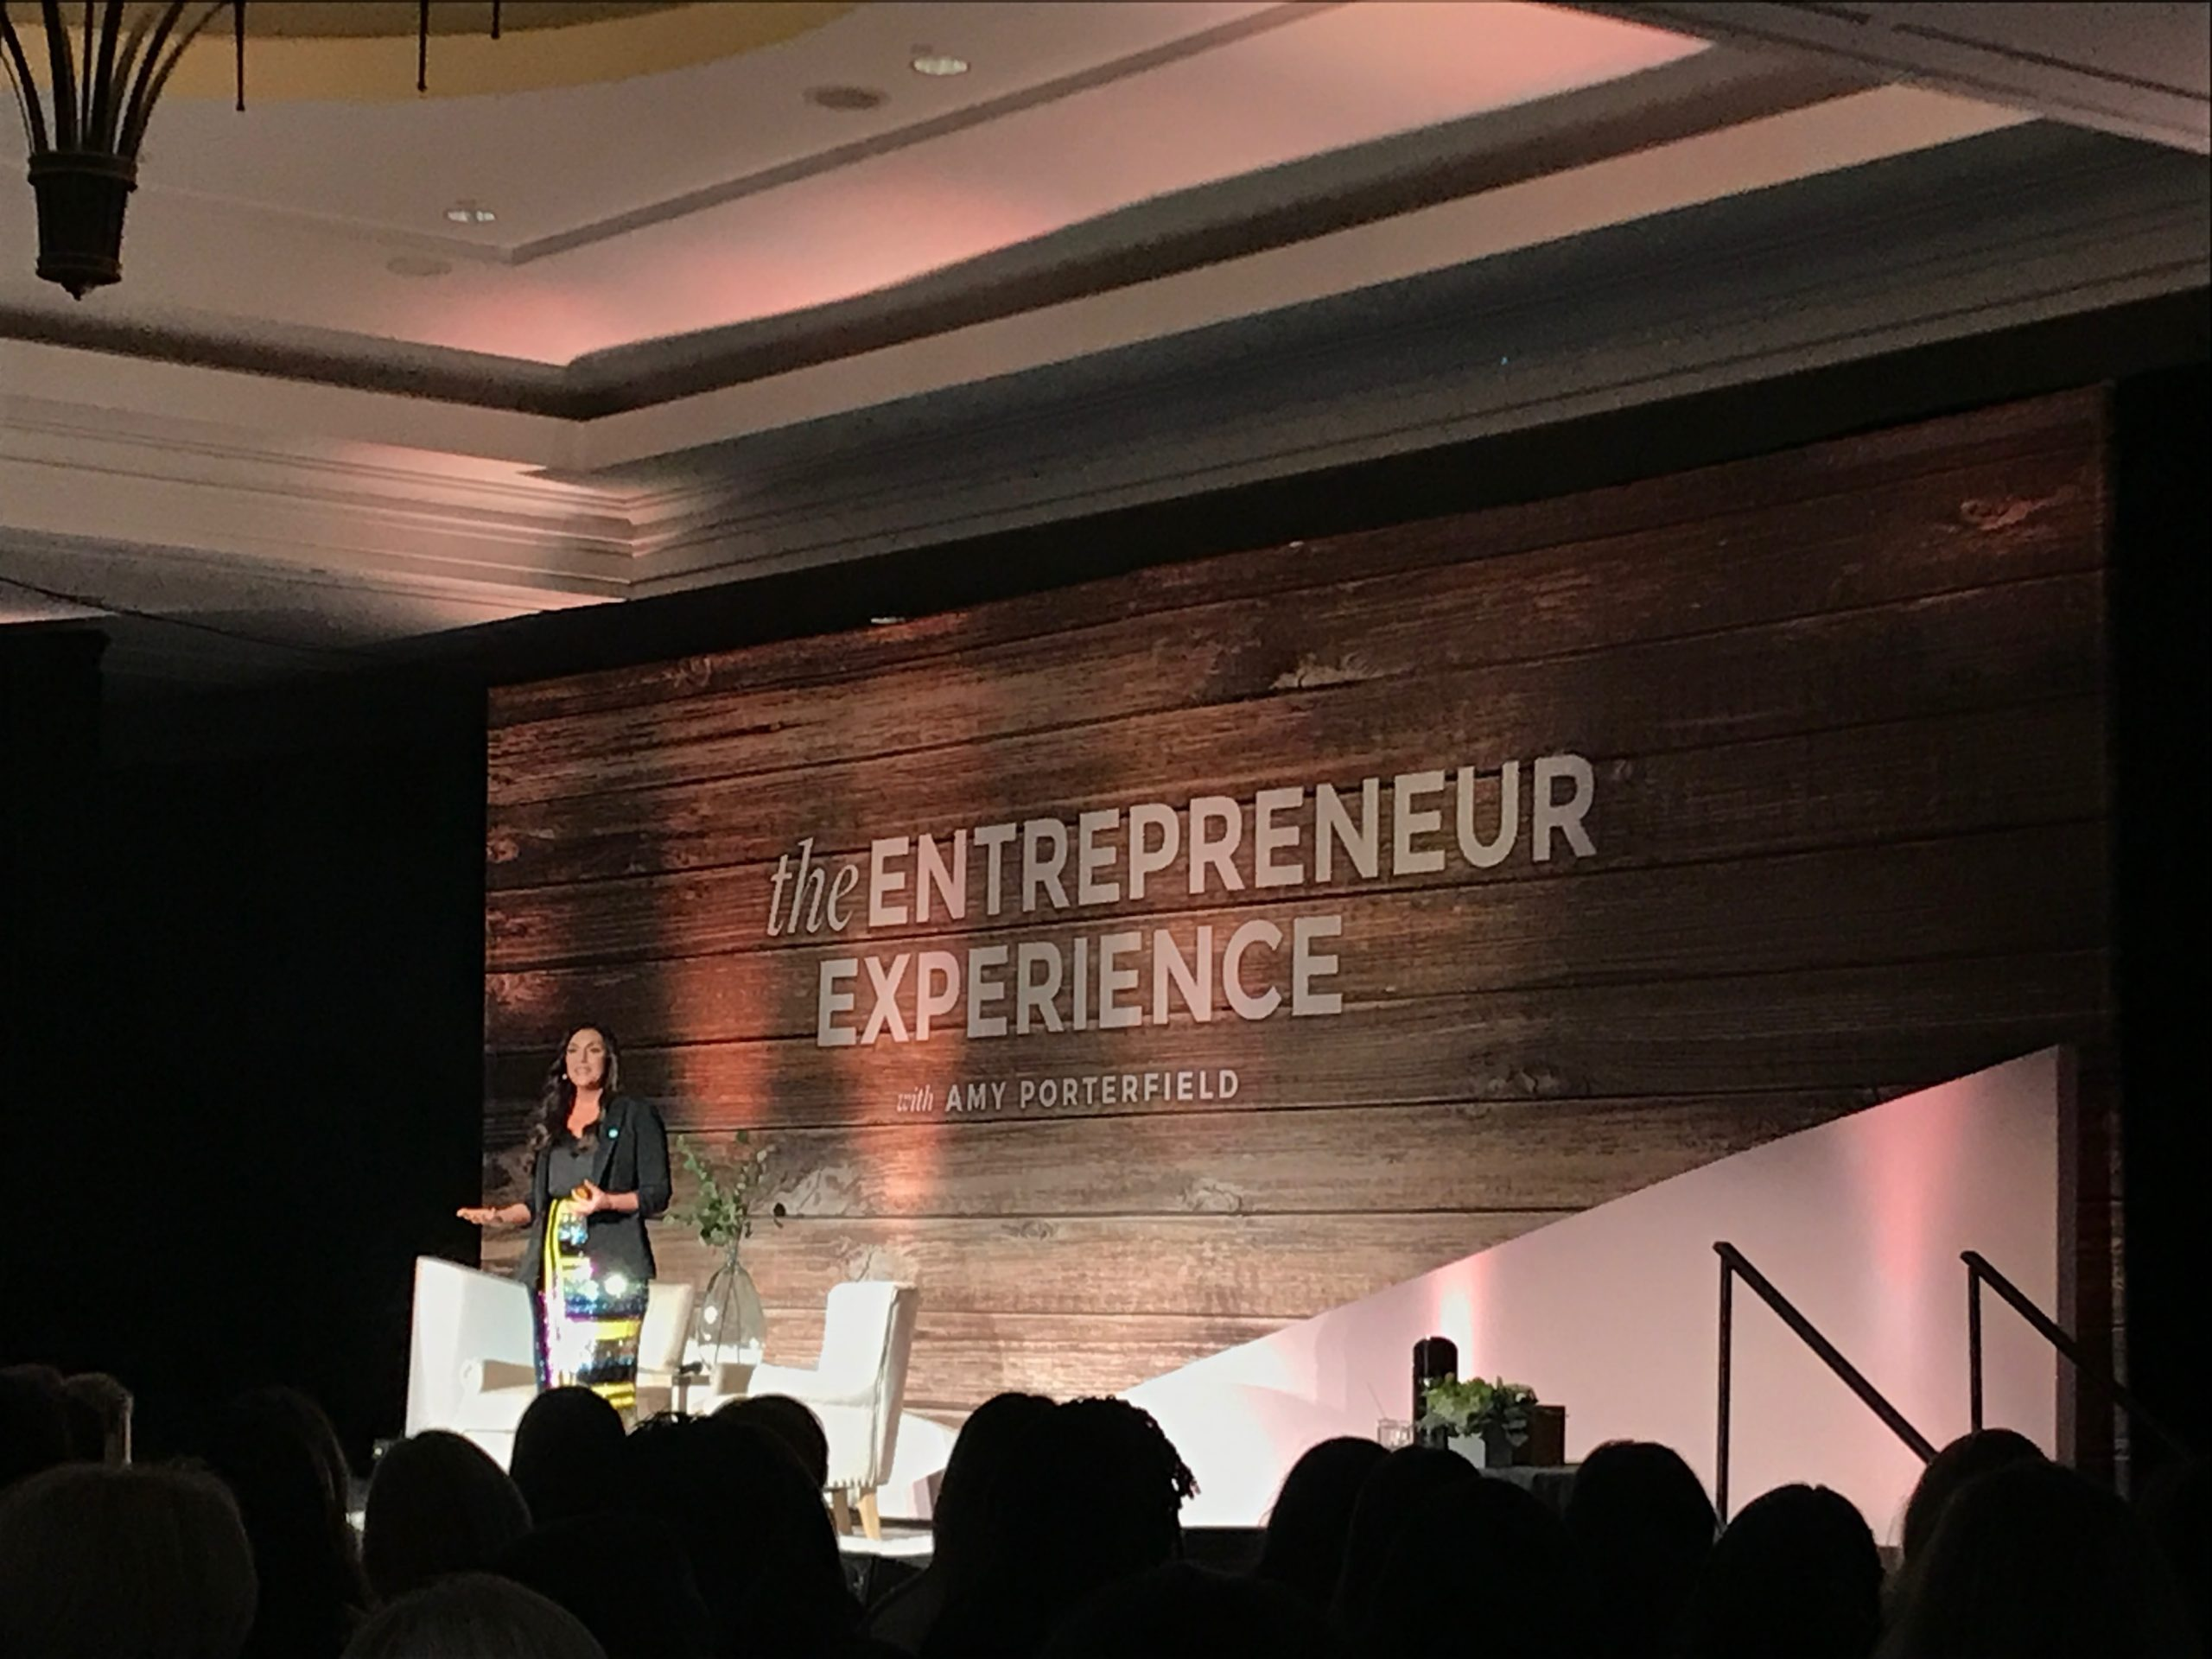 Amy Porterfield takes the stage at her Entrepreneur Experience